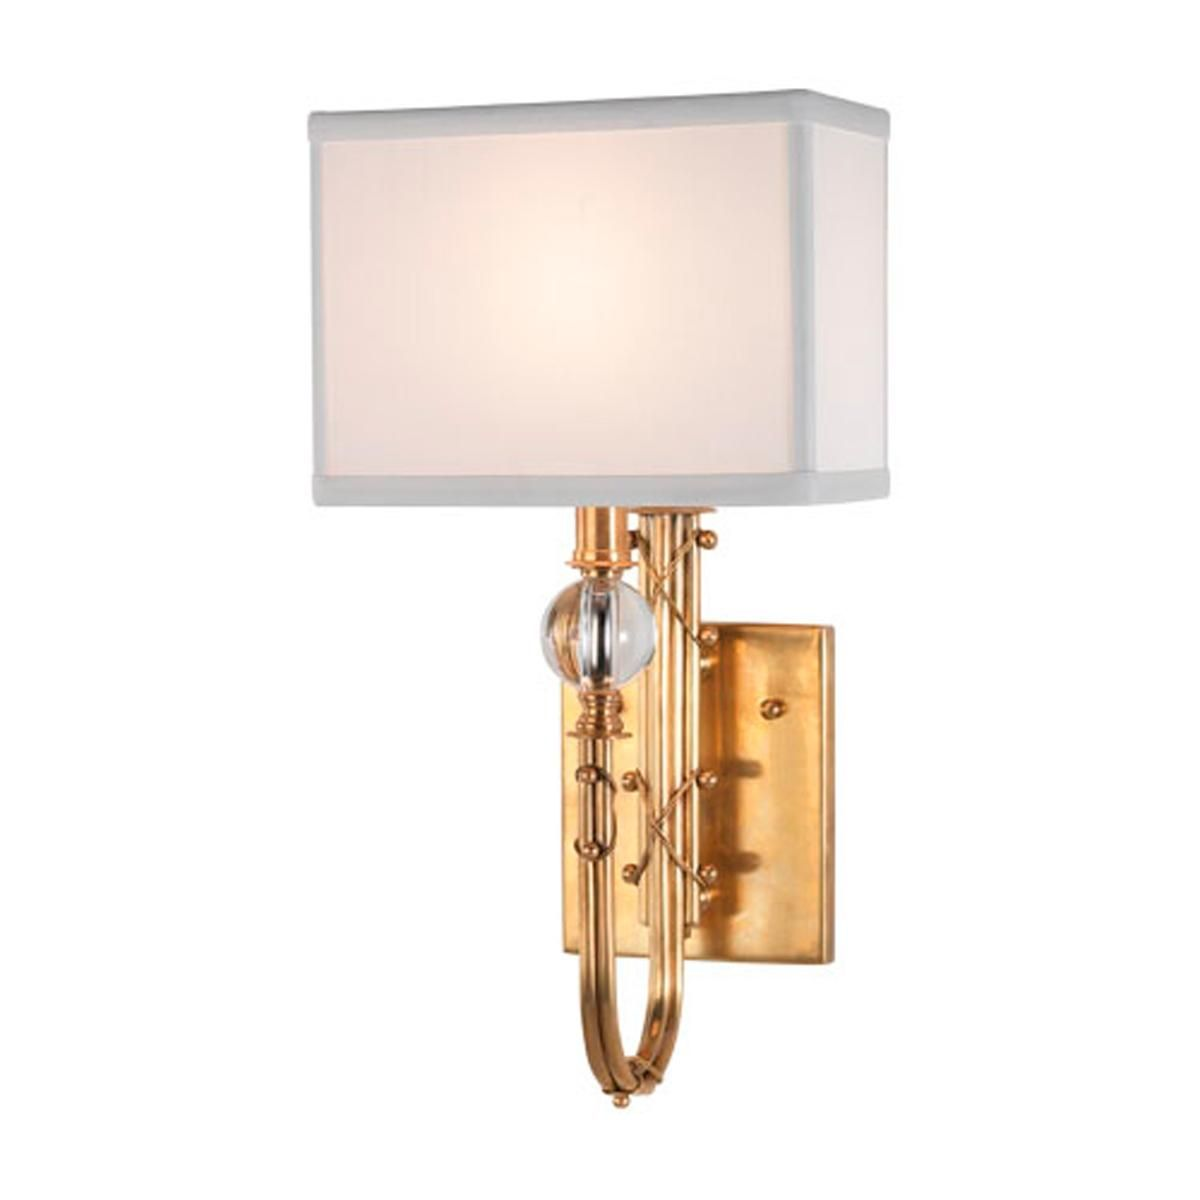 hollywood lighting fixtures. Mary McDonald Hollywood Glam Sconce. Natural Brass Or Vintage Silver And Four Shade Colors. Lighting Fixtures